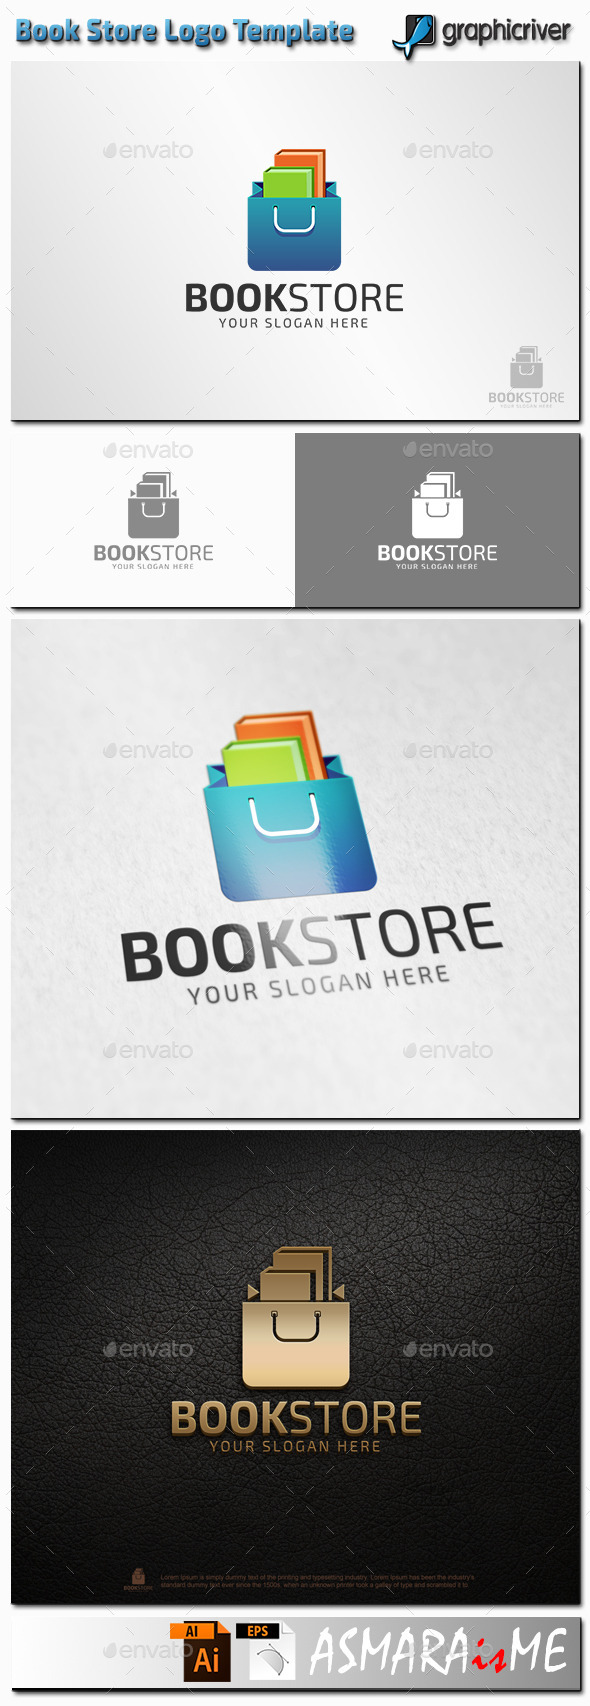 GraphicRiver Book Store Logo 11216157